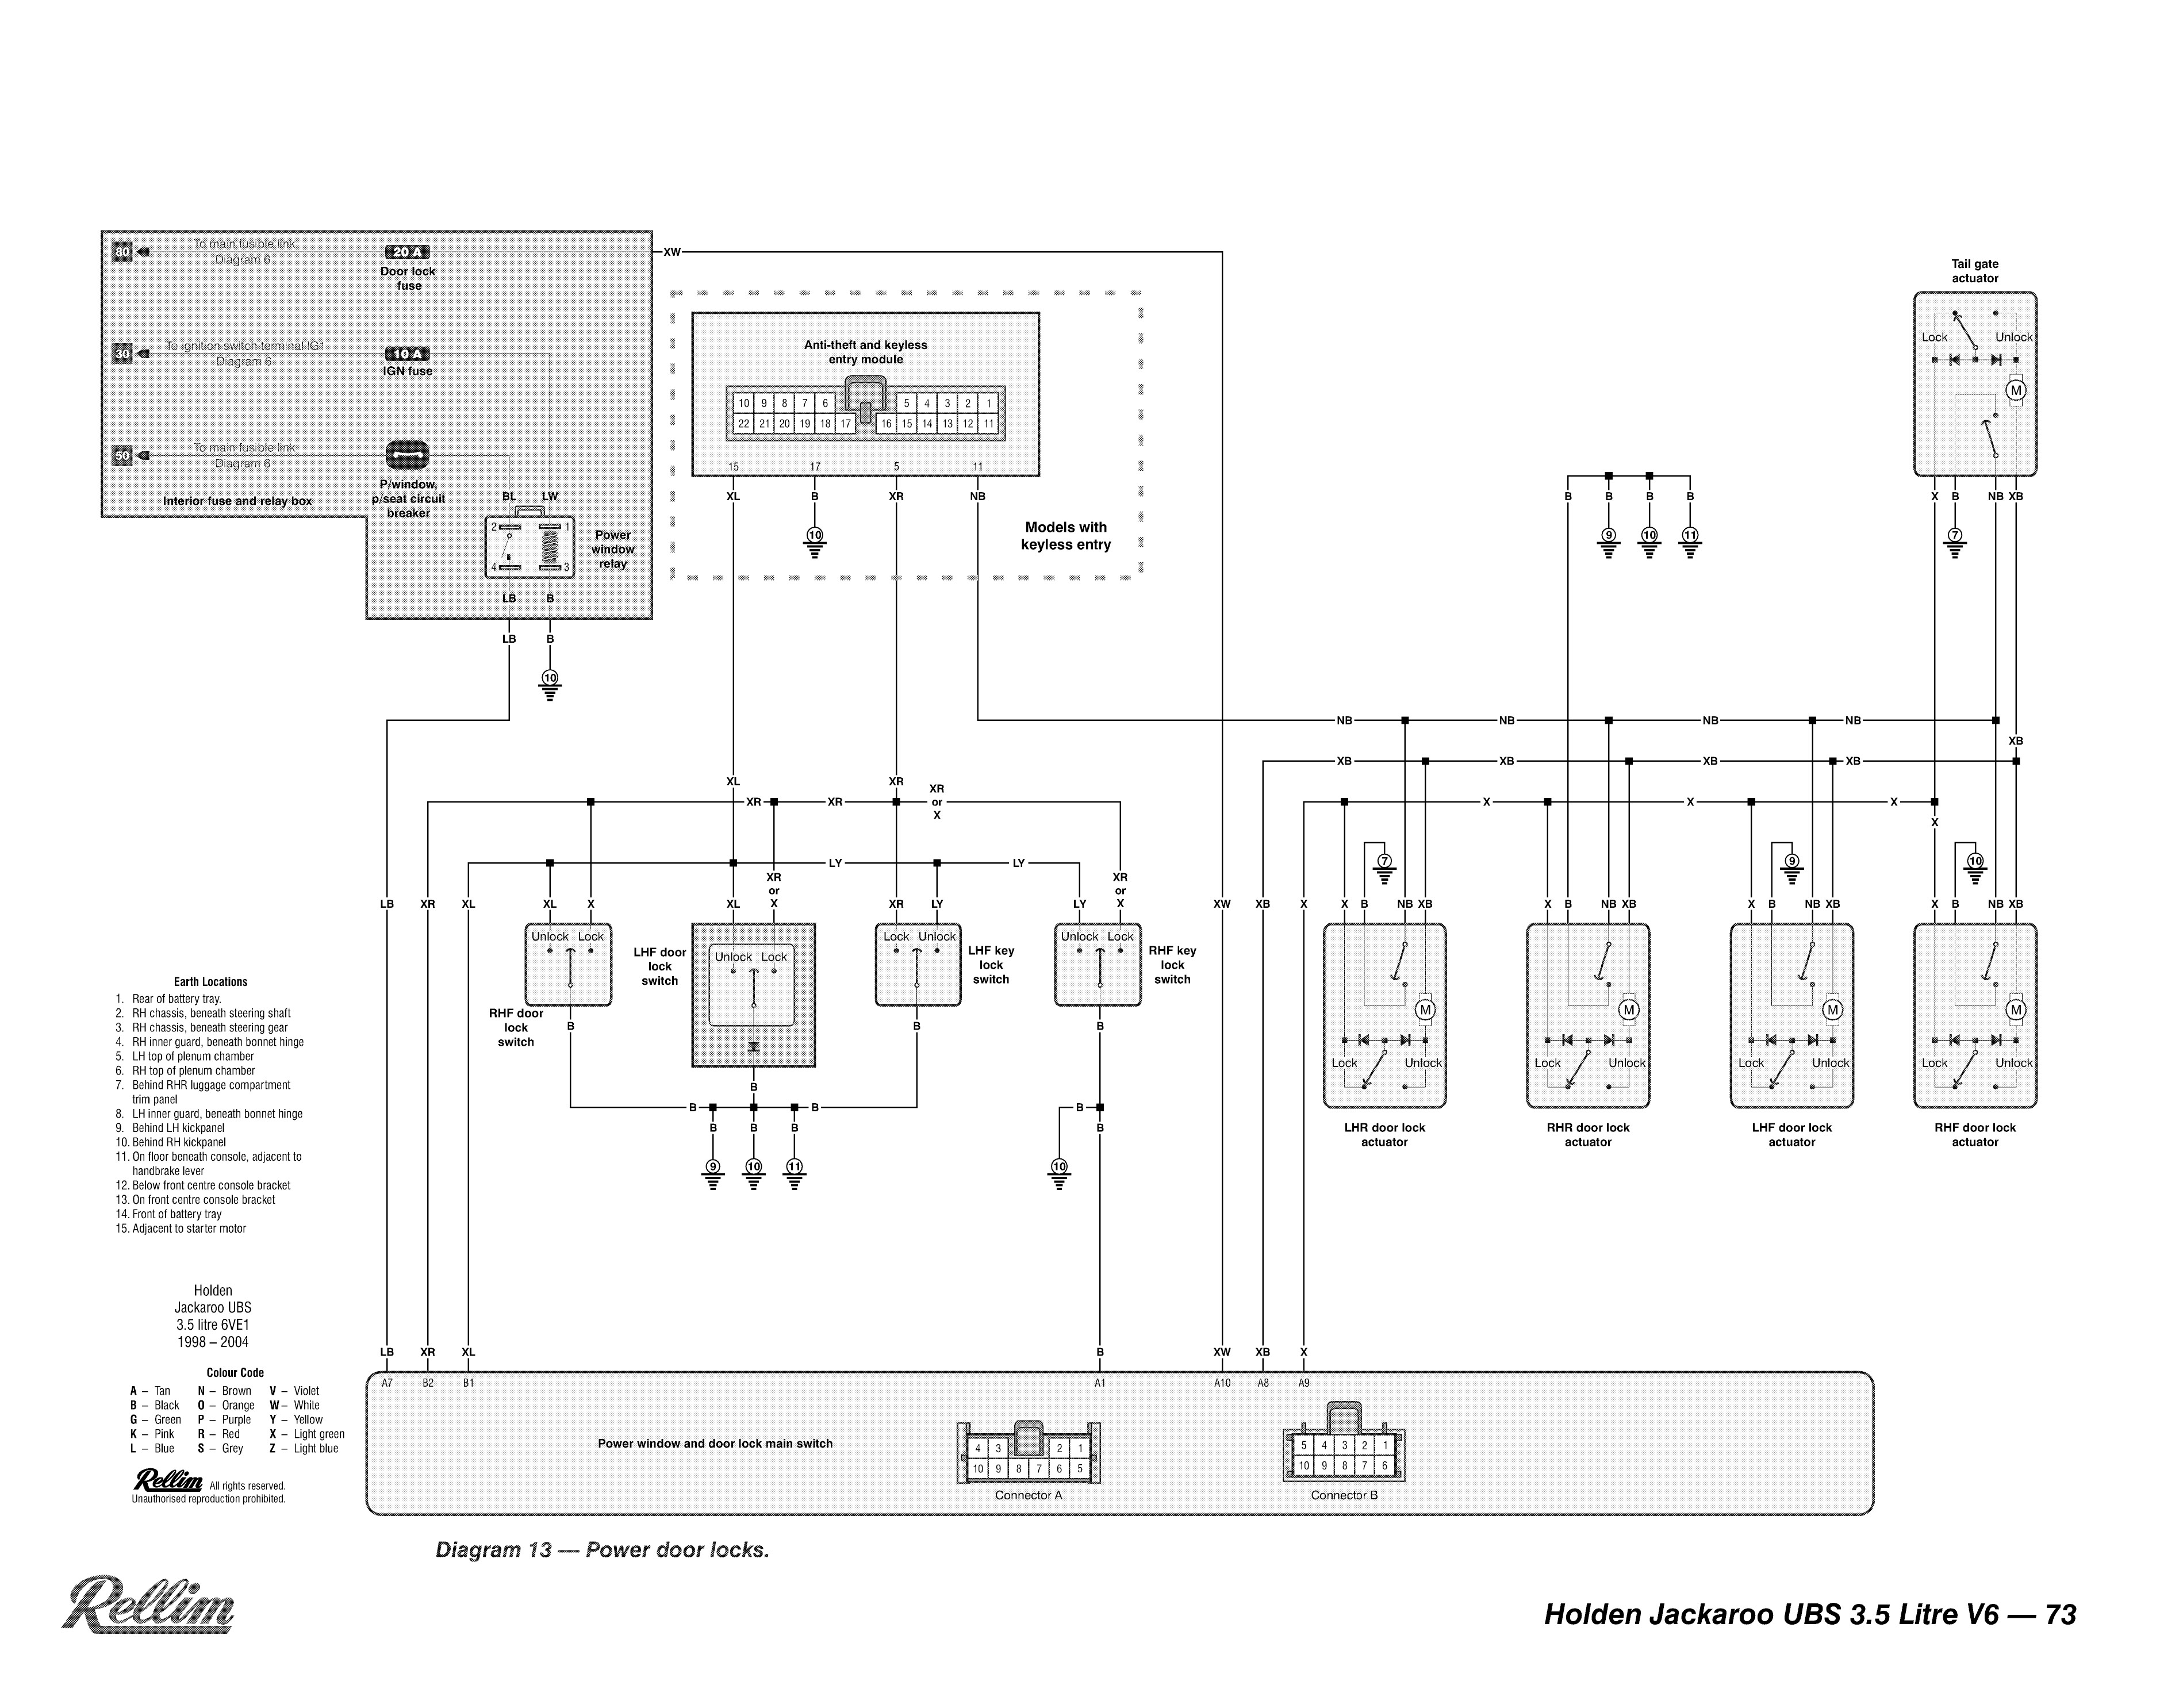 Holden Jackaroo Stereo Wiring Diagram Vx Commodore Delighted Vt Images Electrical Circuit 2971